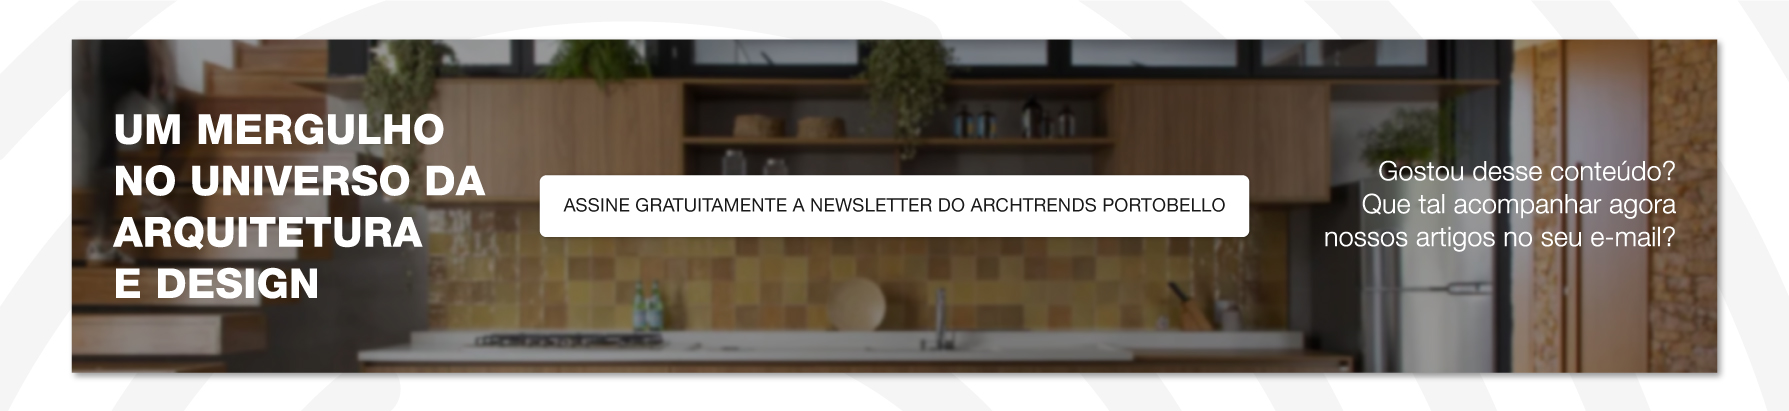 archtrends